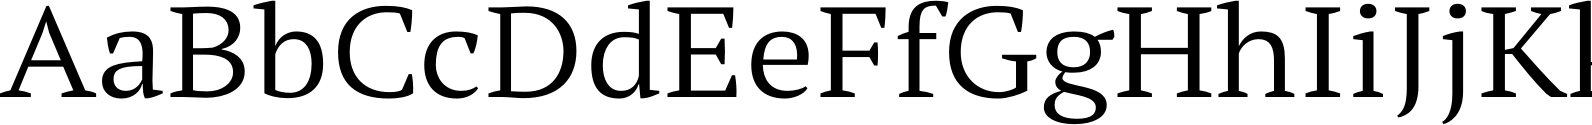 PT Serif Pro Extended Book Font